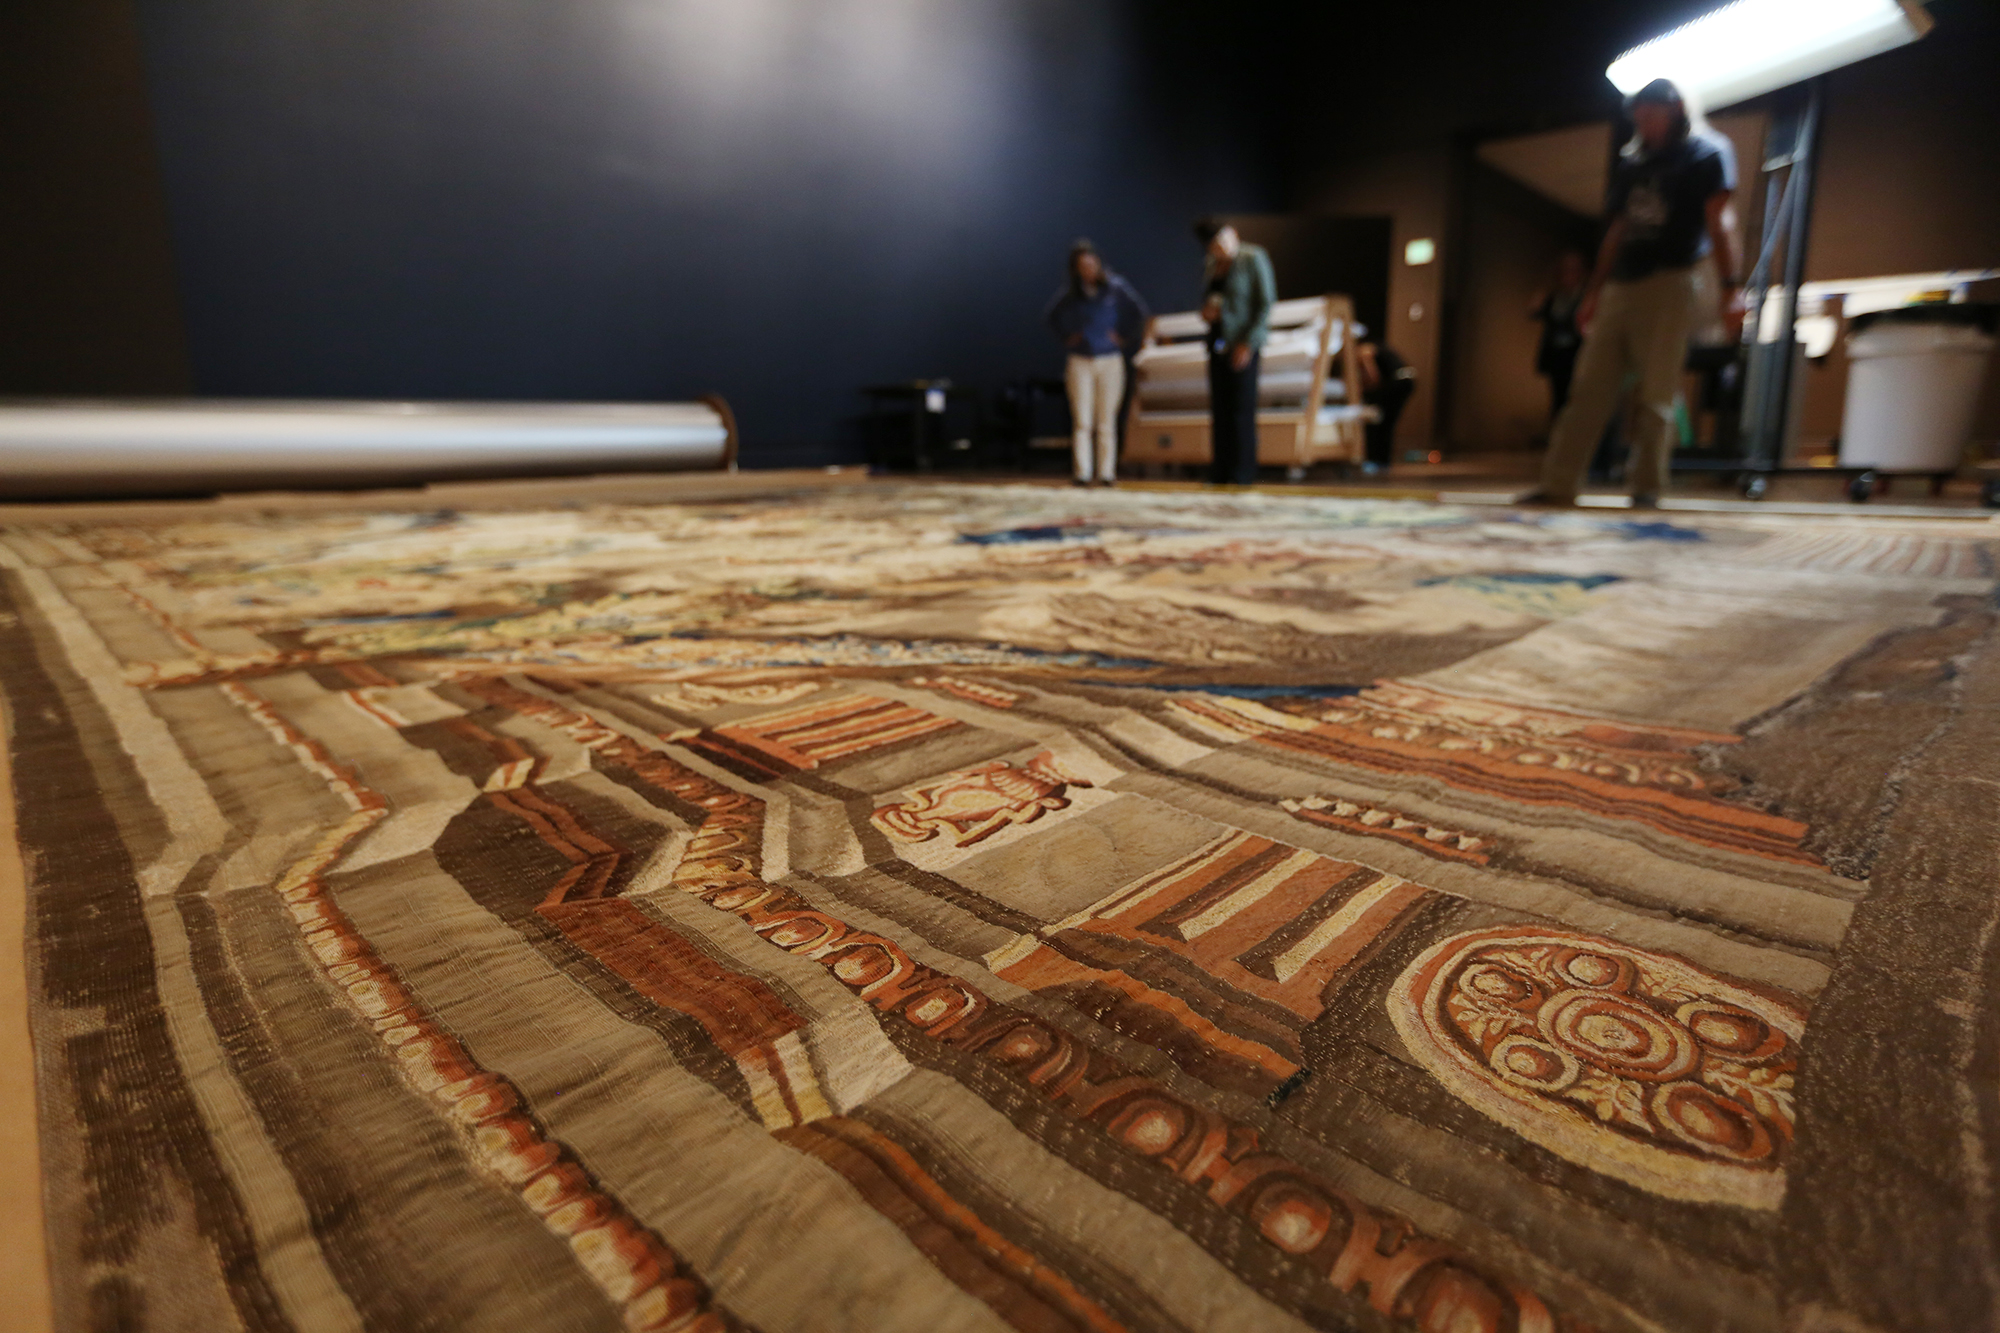 Once unrolled, the tapestry is carefully measured and re-measured in preparation for hanging.